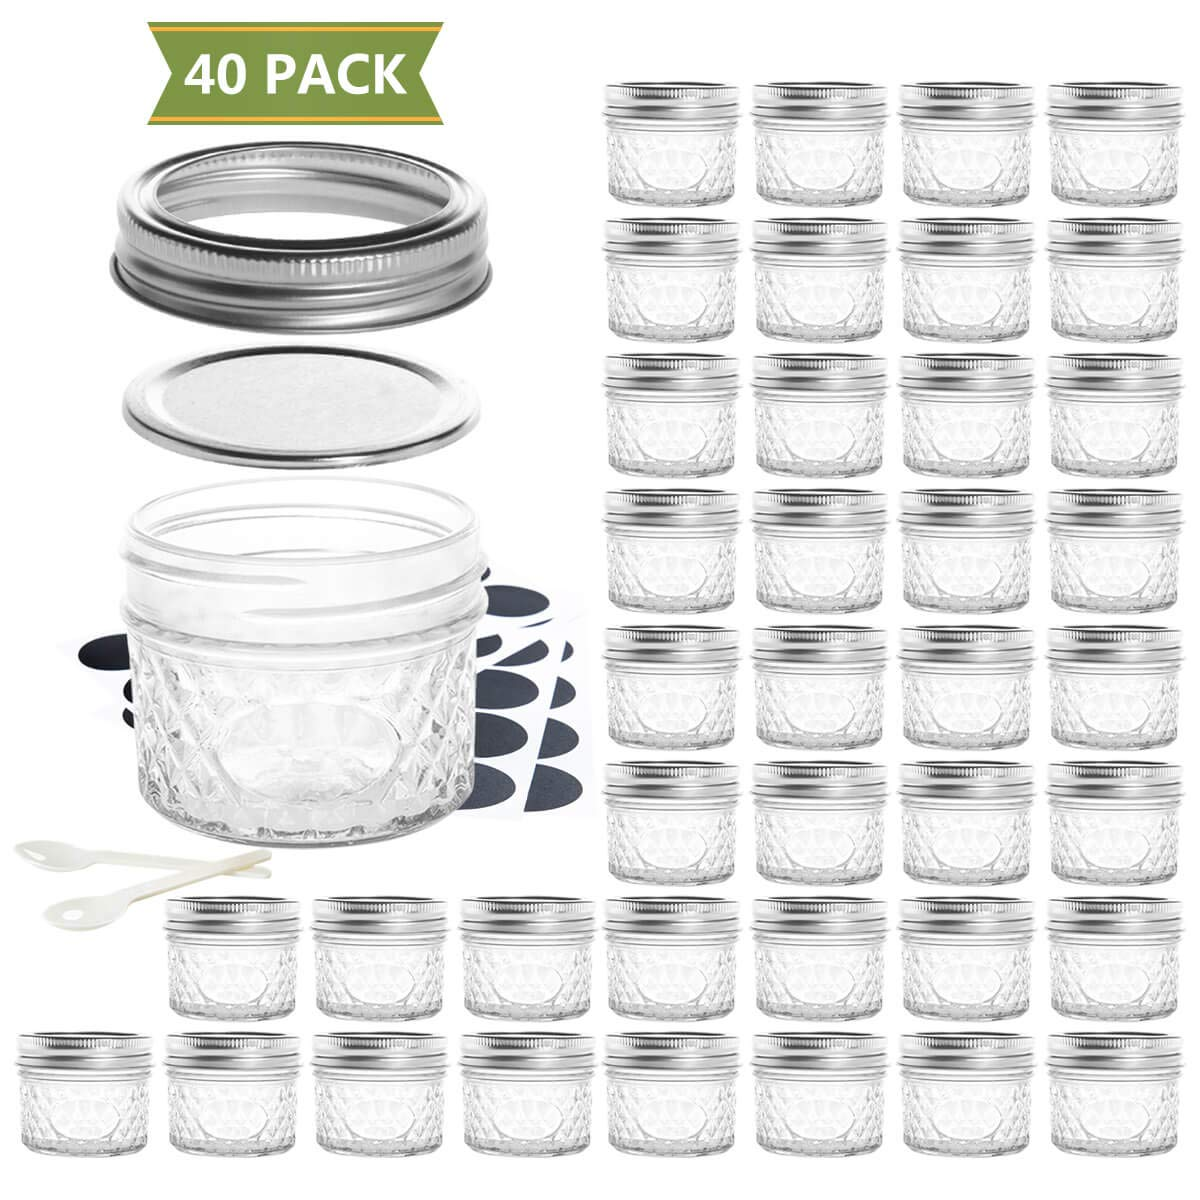 SXUDA Mason Jar BPA-Free 4oz Mini Canning Jars with Regular Lids and Bands Jelly Jars for Jam, Honey, Wedding Favors, Shower Favors, Baby Foods, DIY Magnetic Spice Jars, 40 PACK